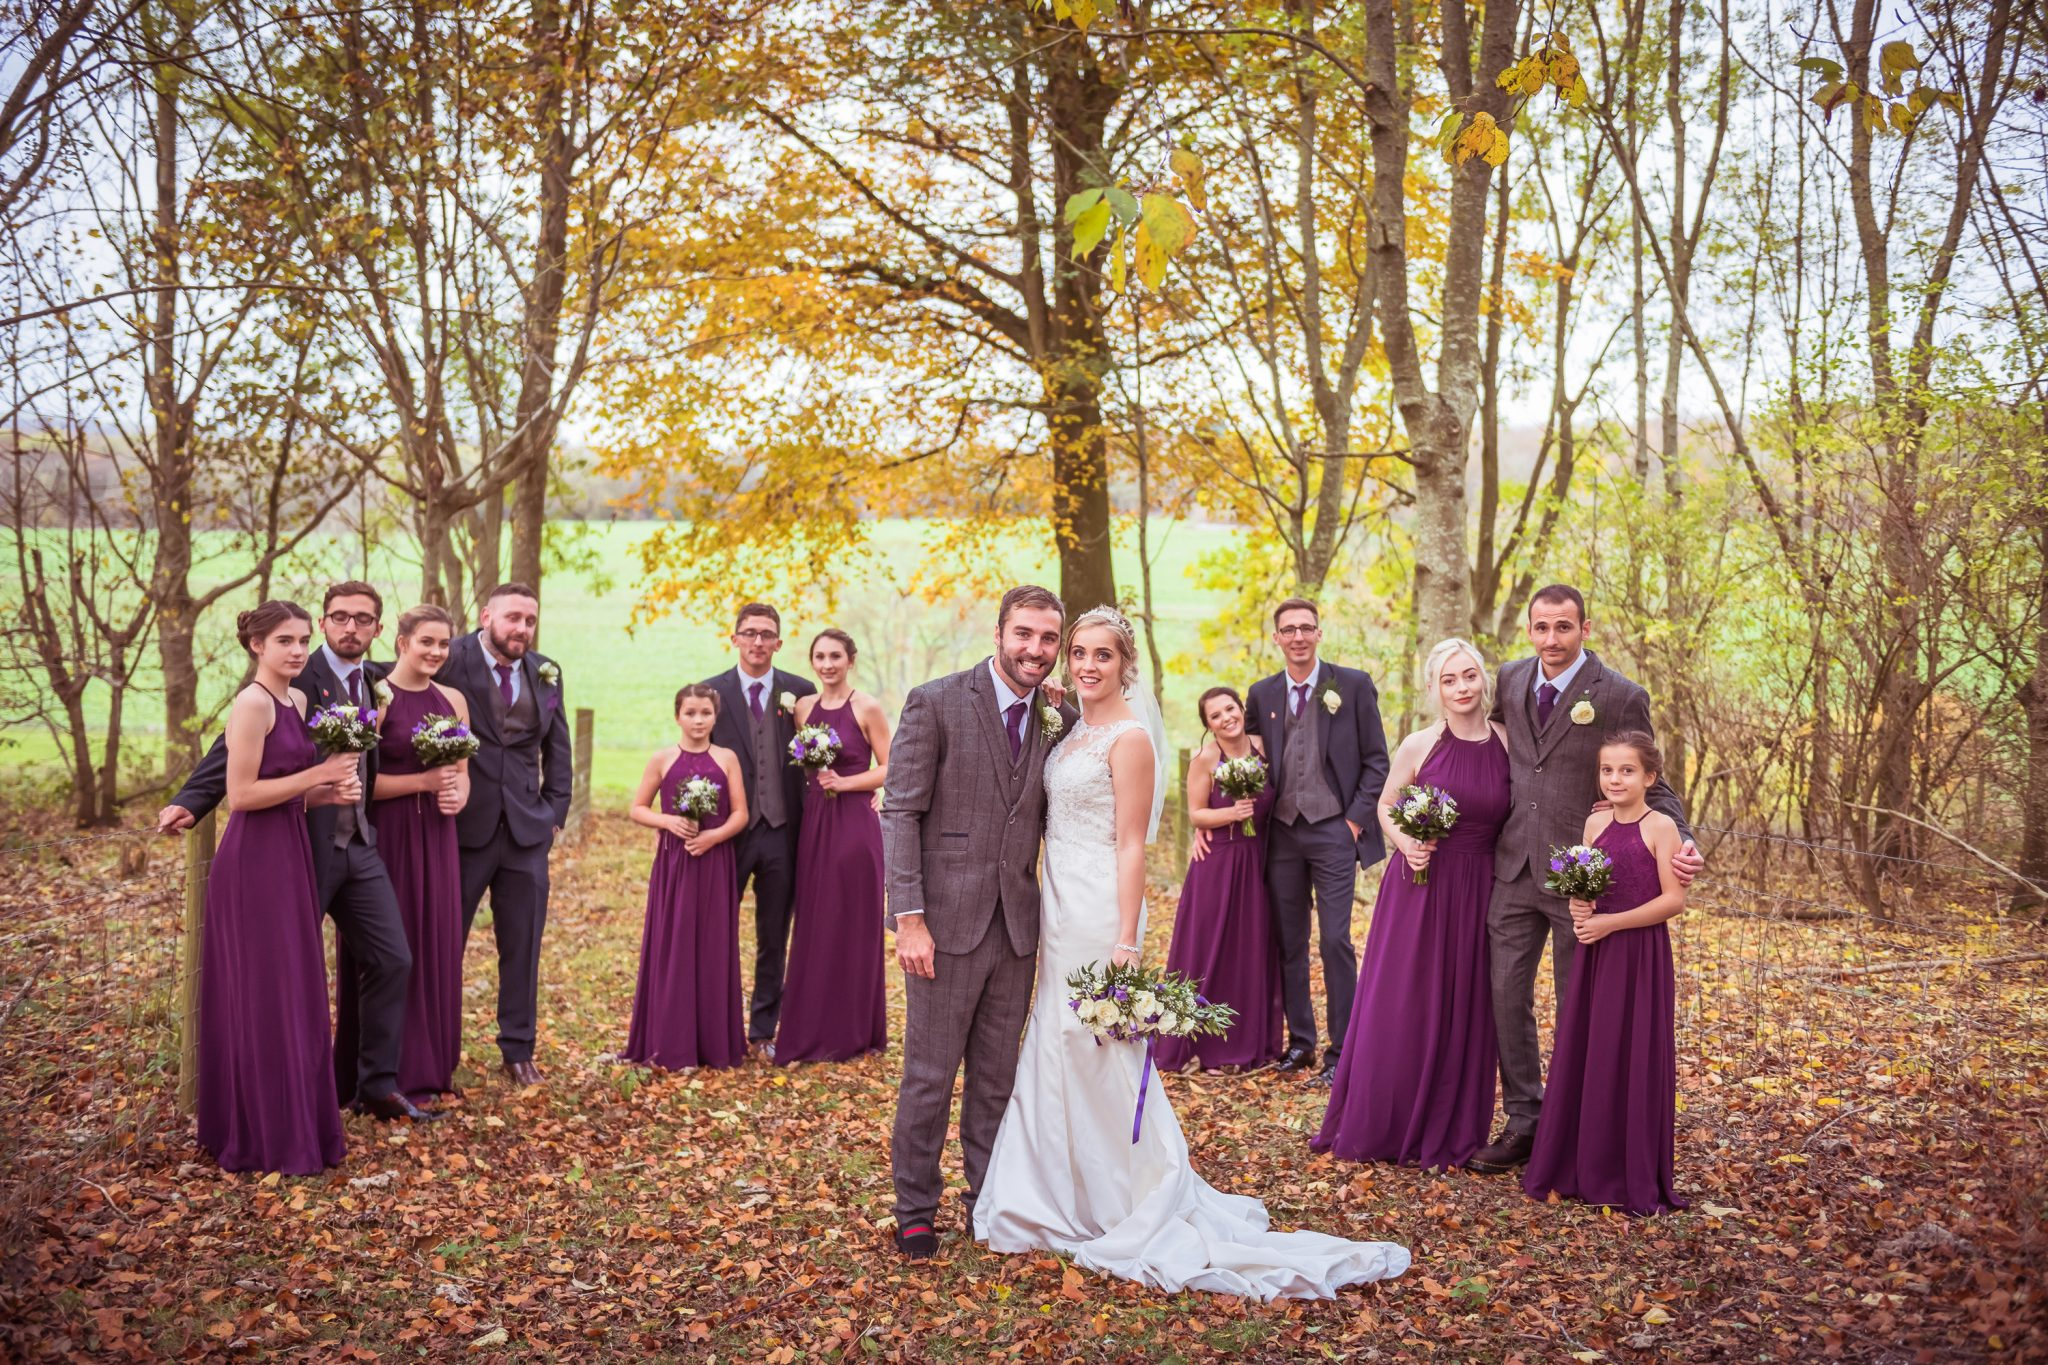 purple dresses and flowers in the autumn leaves by sussex photographer